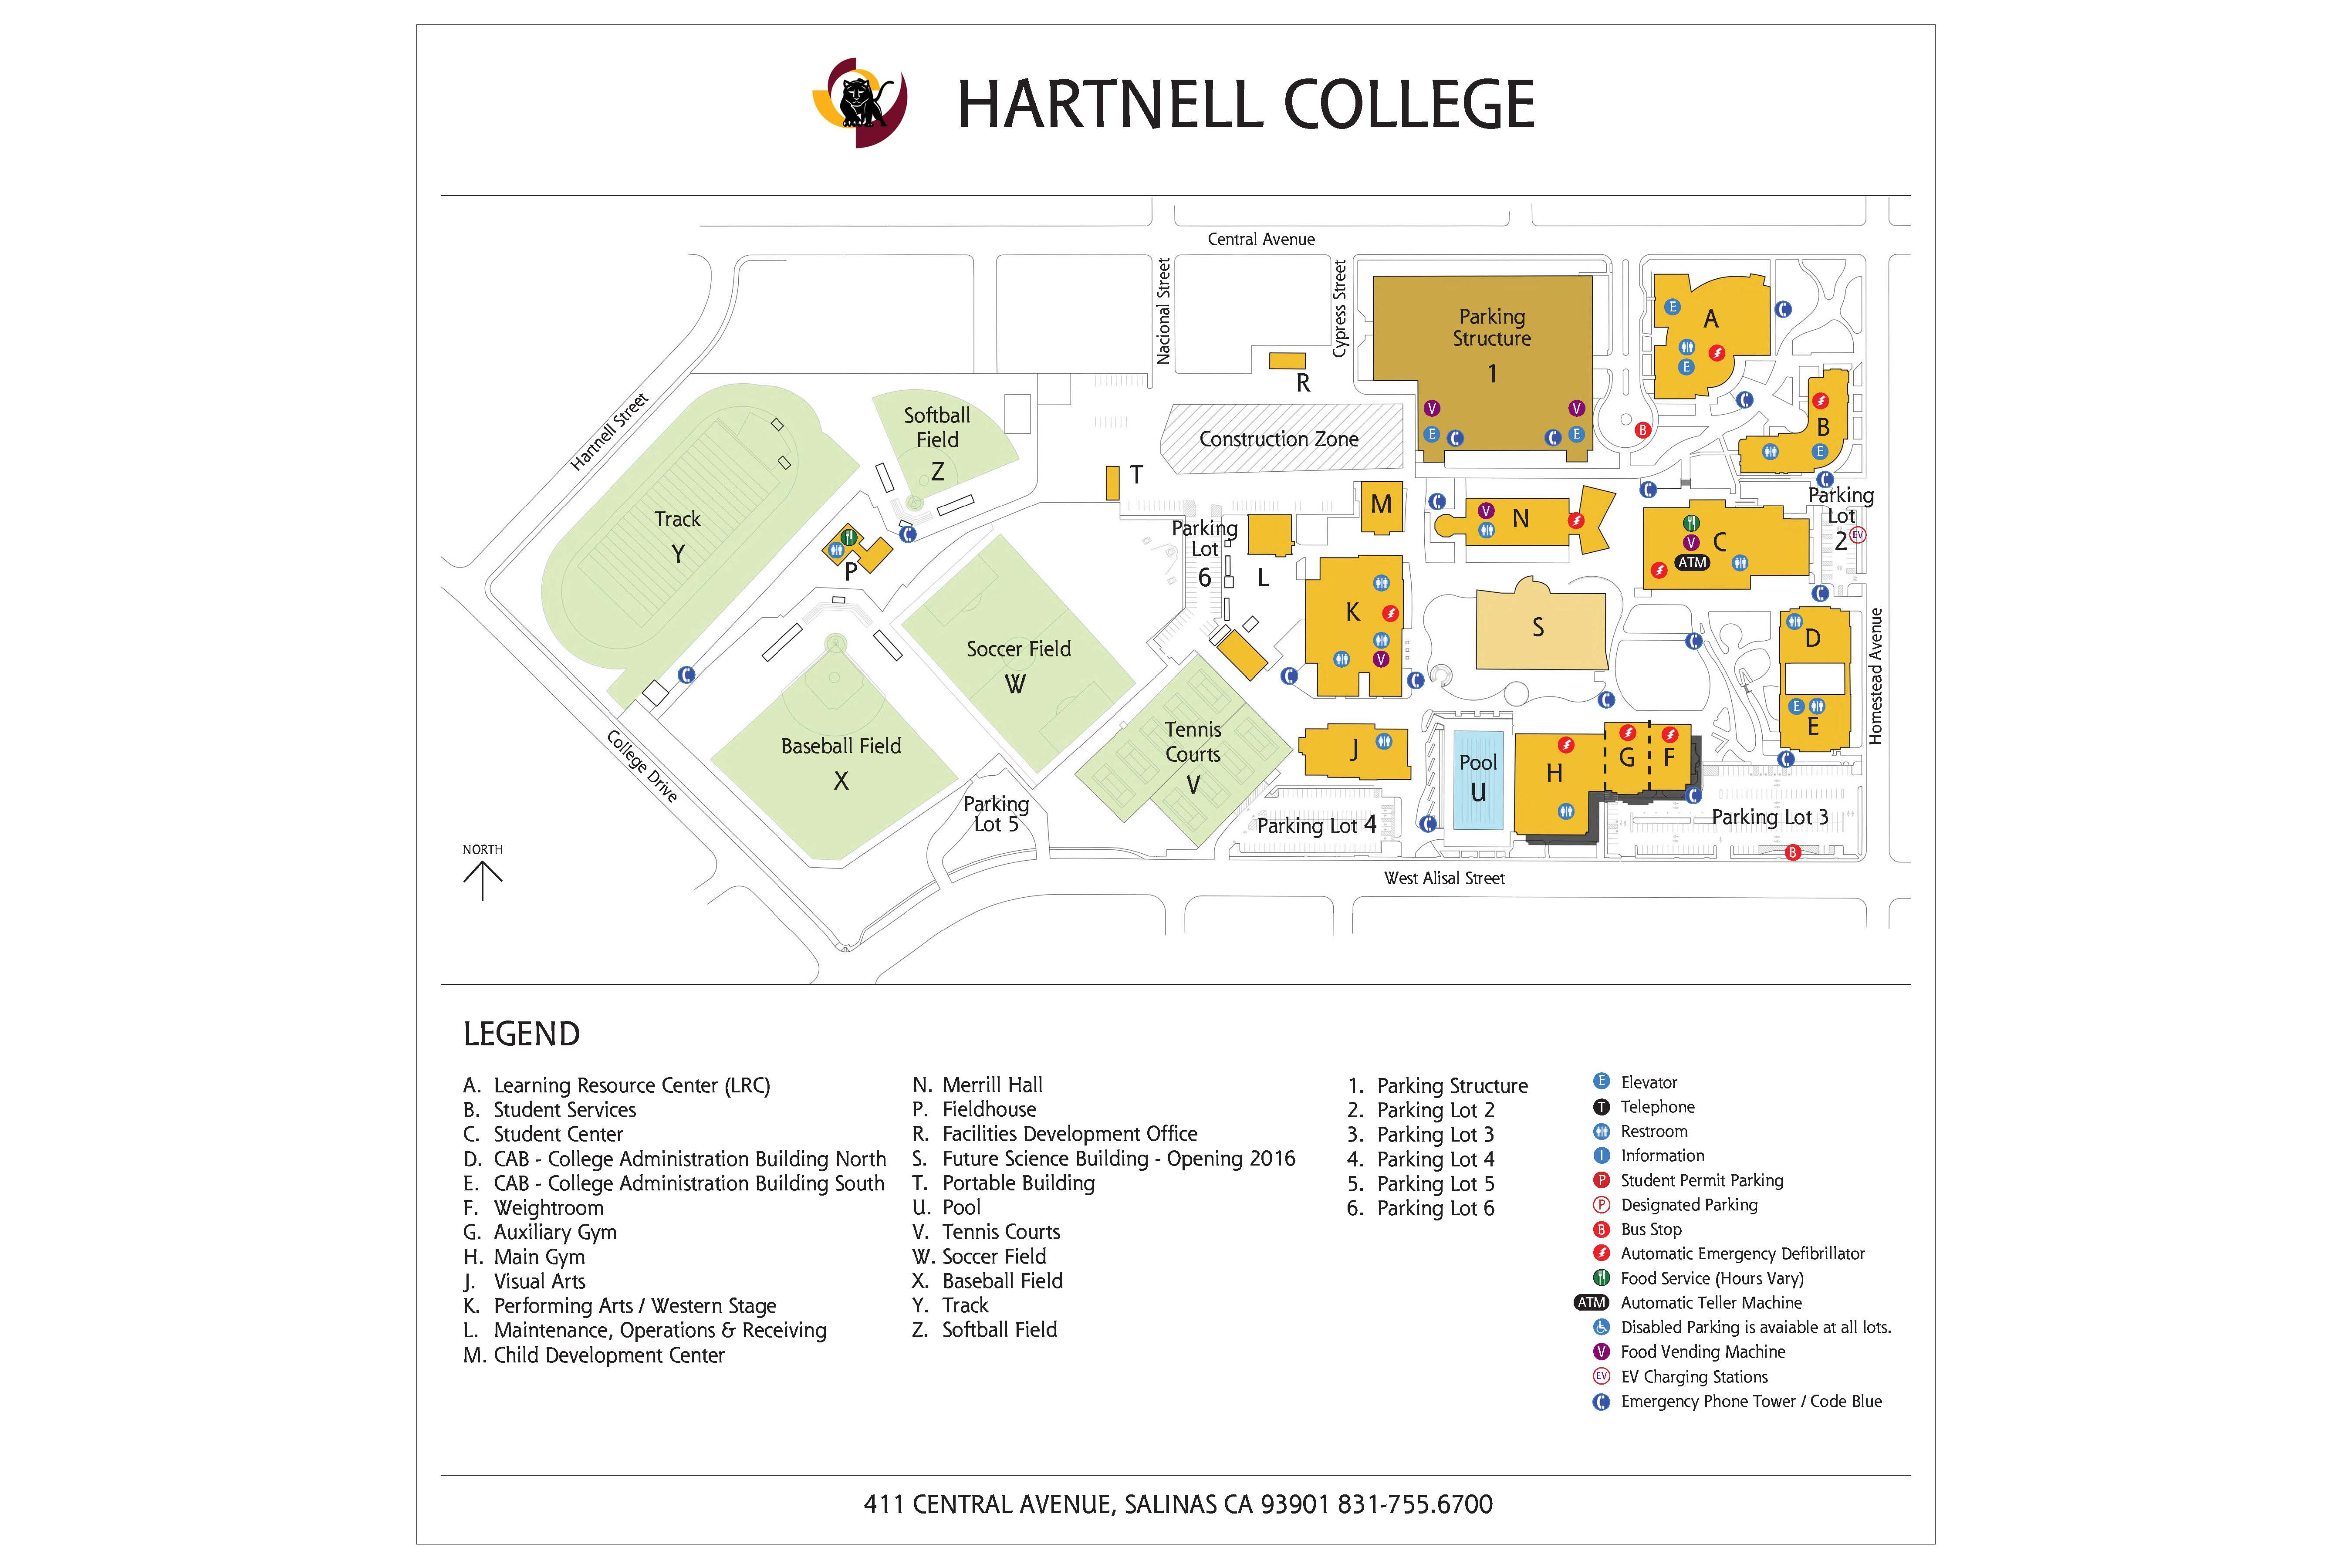 Main Campus Map | Hartnell College Foundation on map of crestline california, map of frazier park california, map of san mateo county california, map of owens lake california, map of mt. view california, map of mountain house california, map of california santa cruz, map of isleton california, map of moss beach california, map of calaveras california, map of buffalo california, map of loomis california, map of millbrae california, map of desert hot springs california, map of san juan bautista california, map of dinuba california, map of mather california, map of lathrop california, map of pollock pines california,